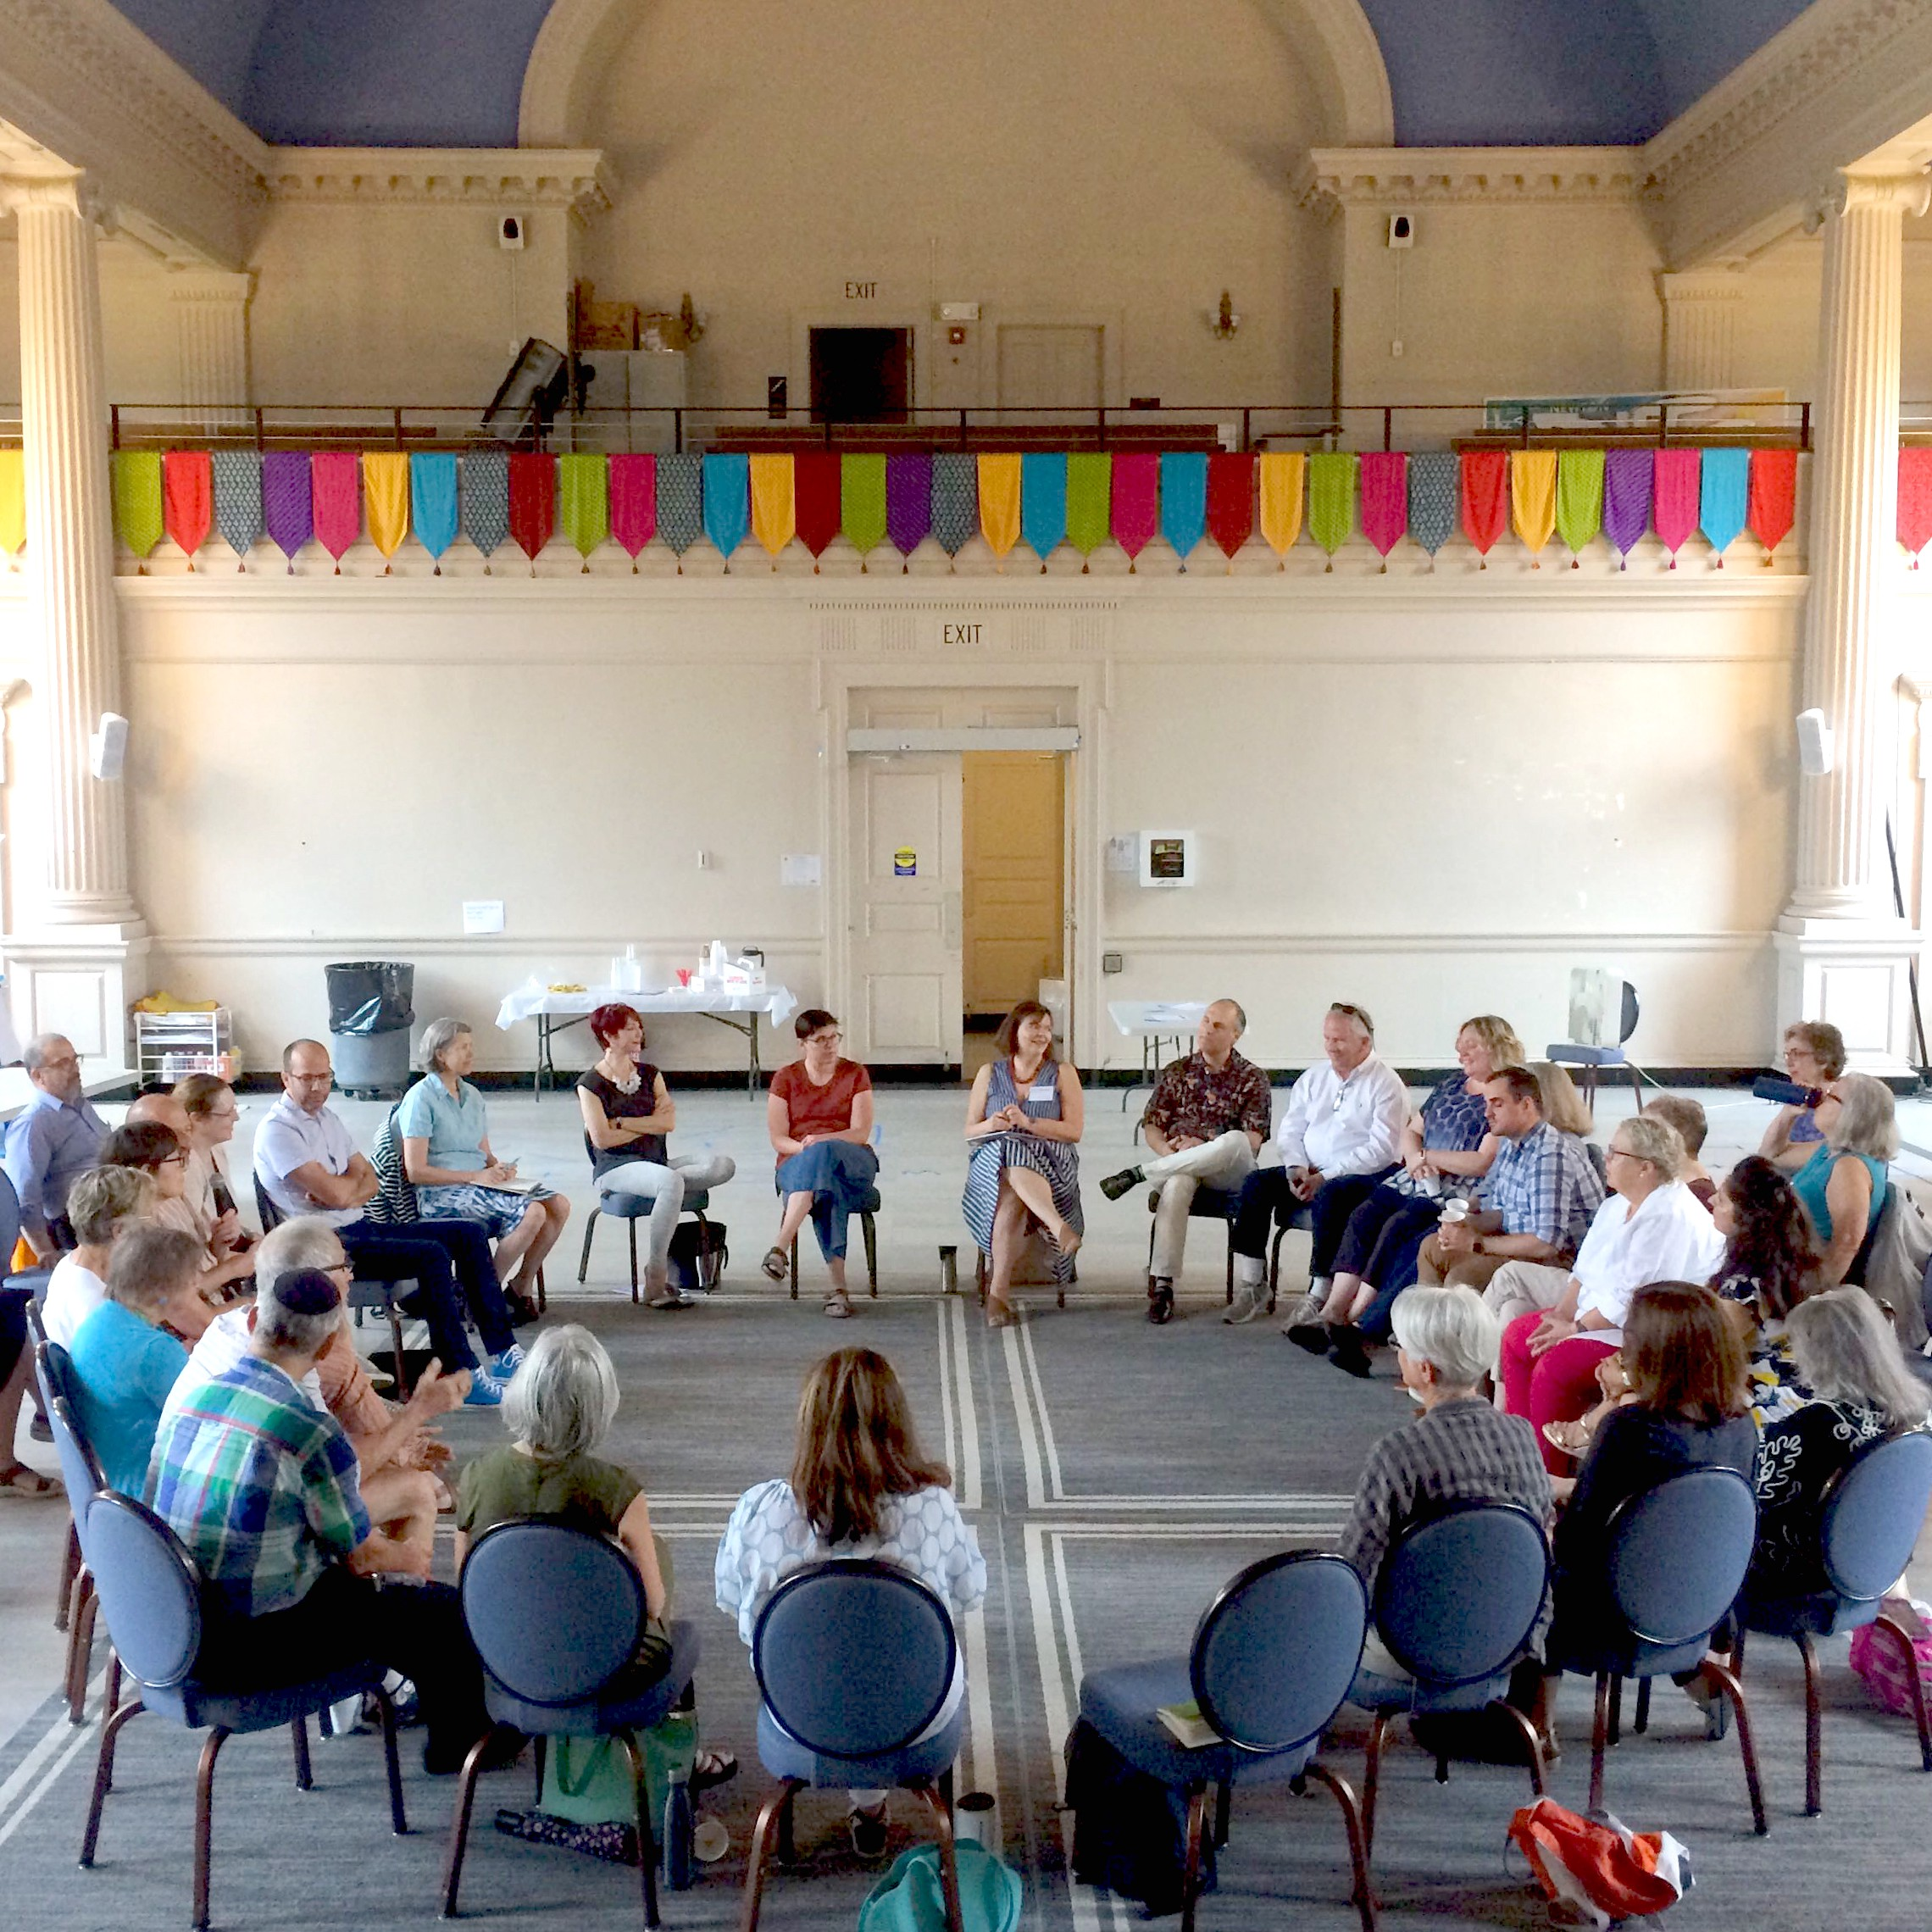 A focus group lead by CivicMoxie for the Create Newton Cultural Master Plan.